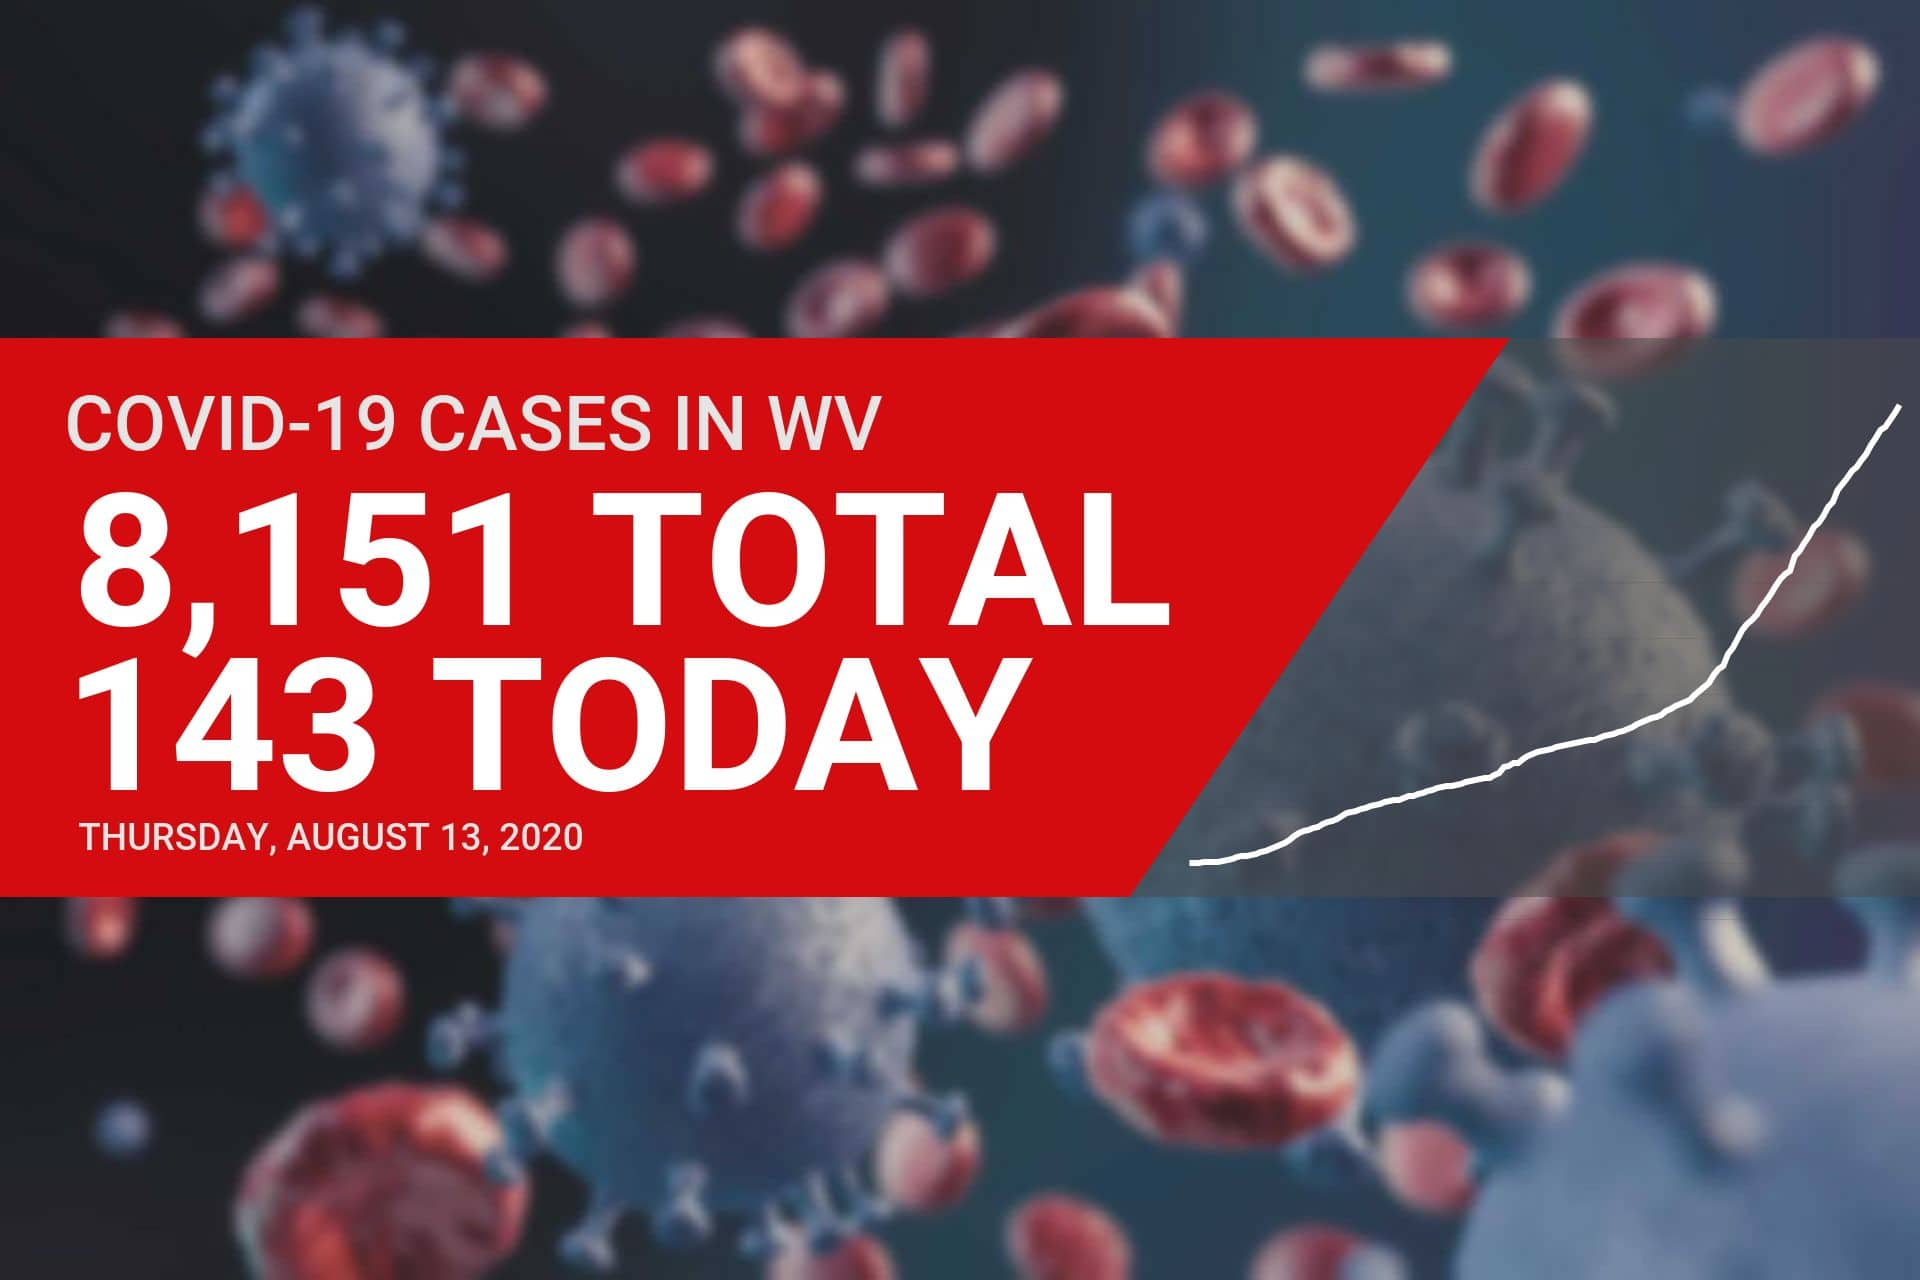 143 new cases of COVID-19 reported in West Virginia on Thursday